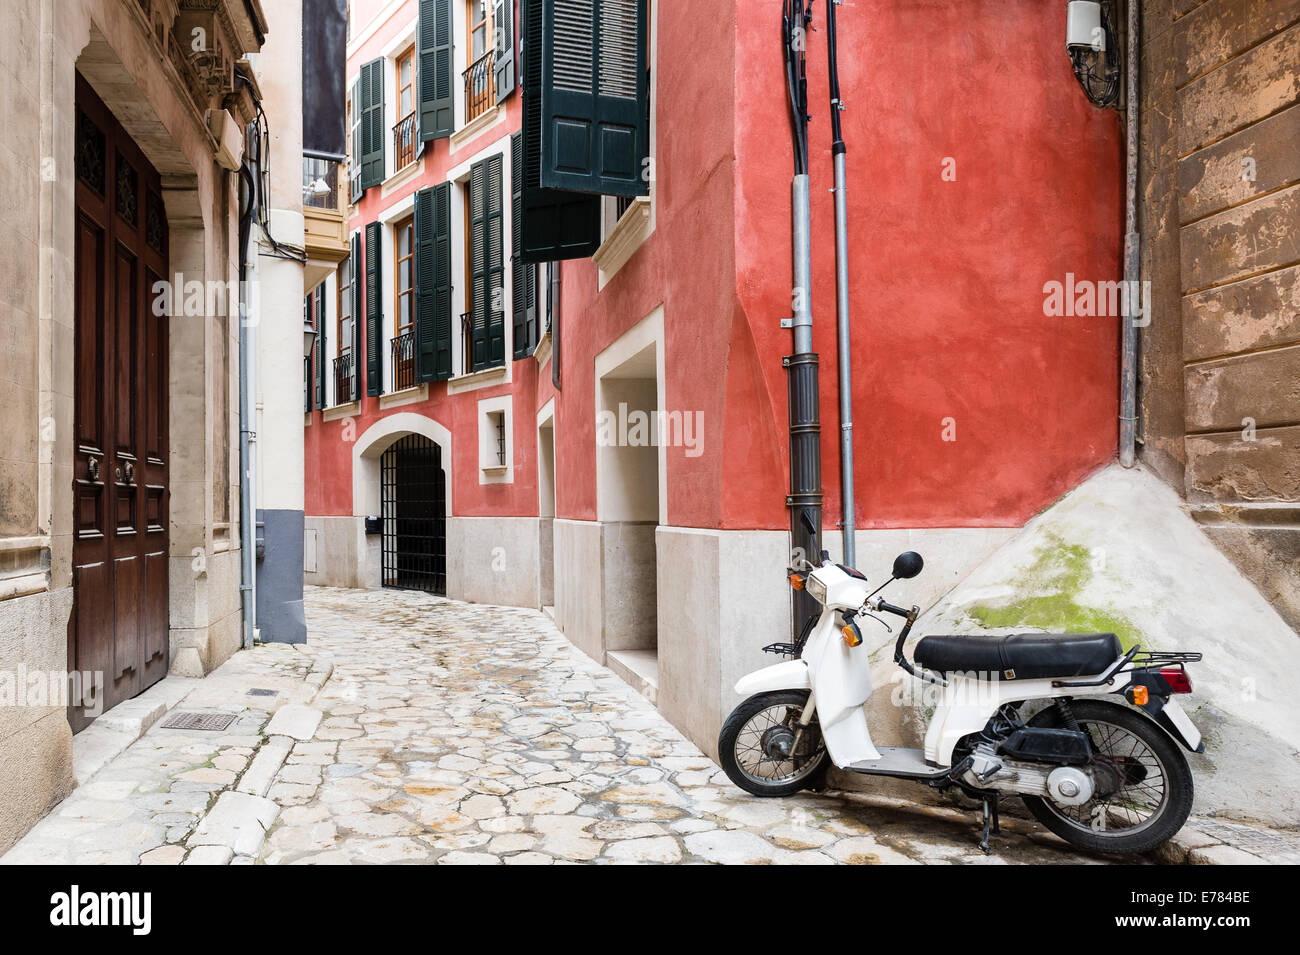 Colorful narrow street in old mediterranean town - Stock Image